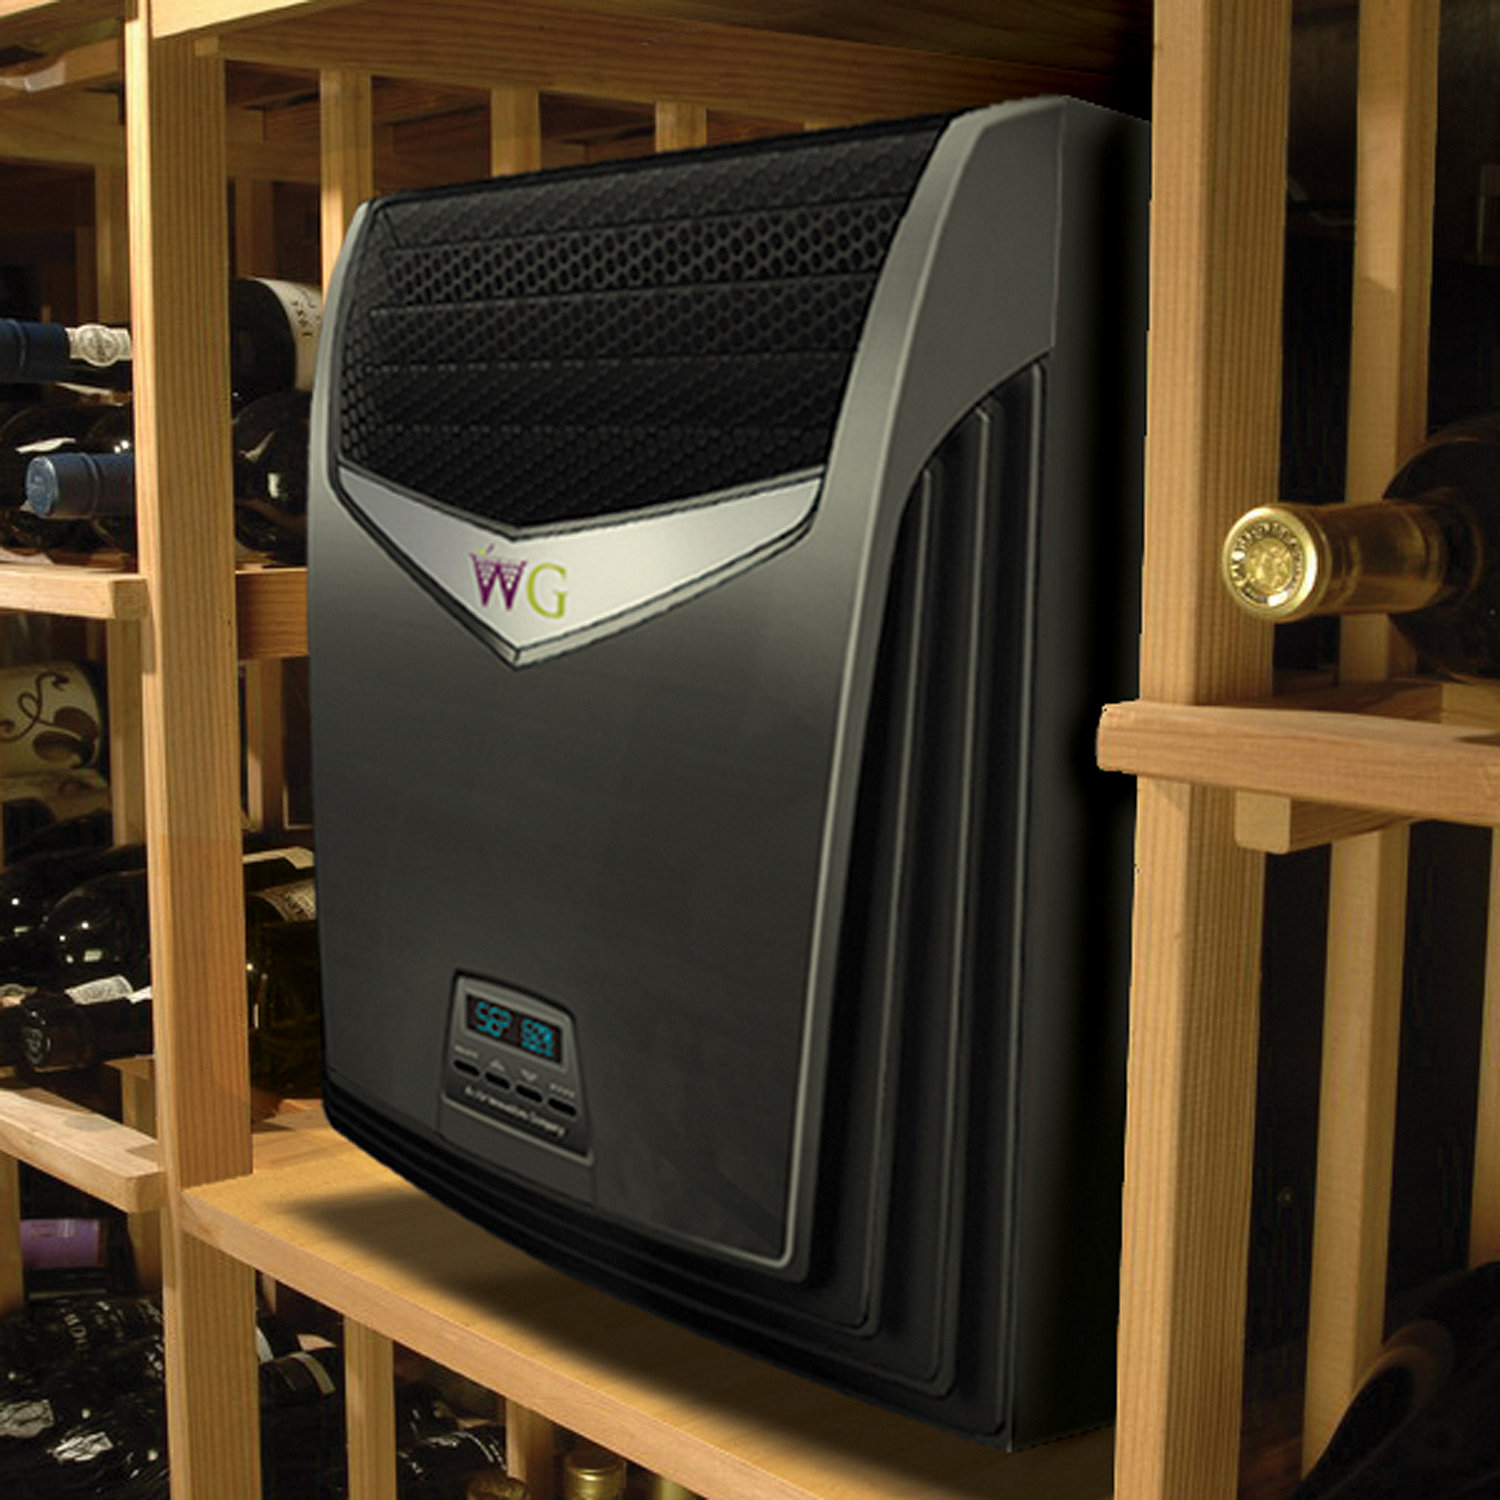 Wine Guardian Ttw018 Through The Wall Wine Cellar Cooling Unit